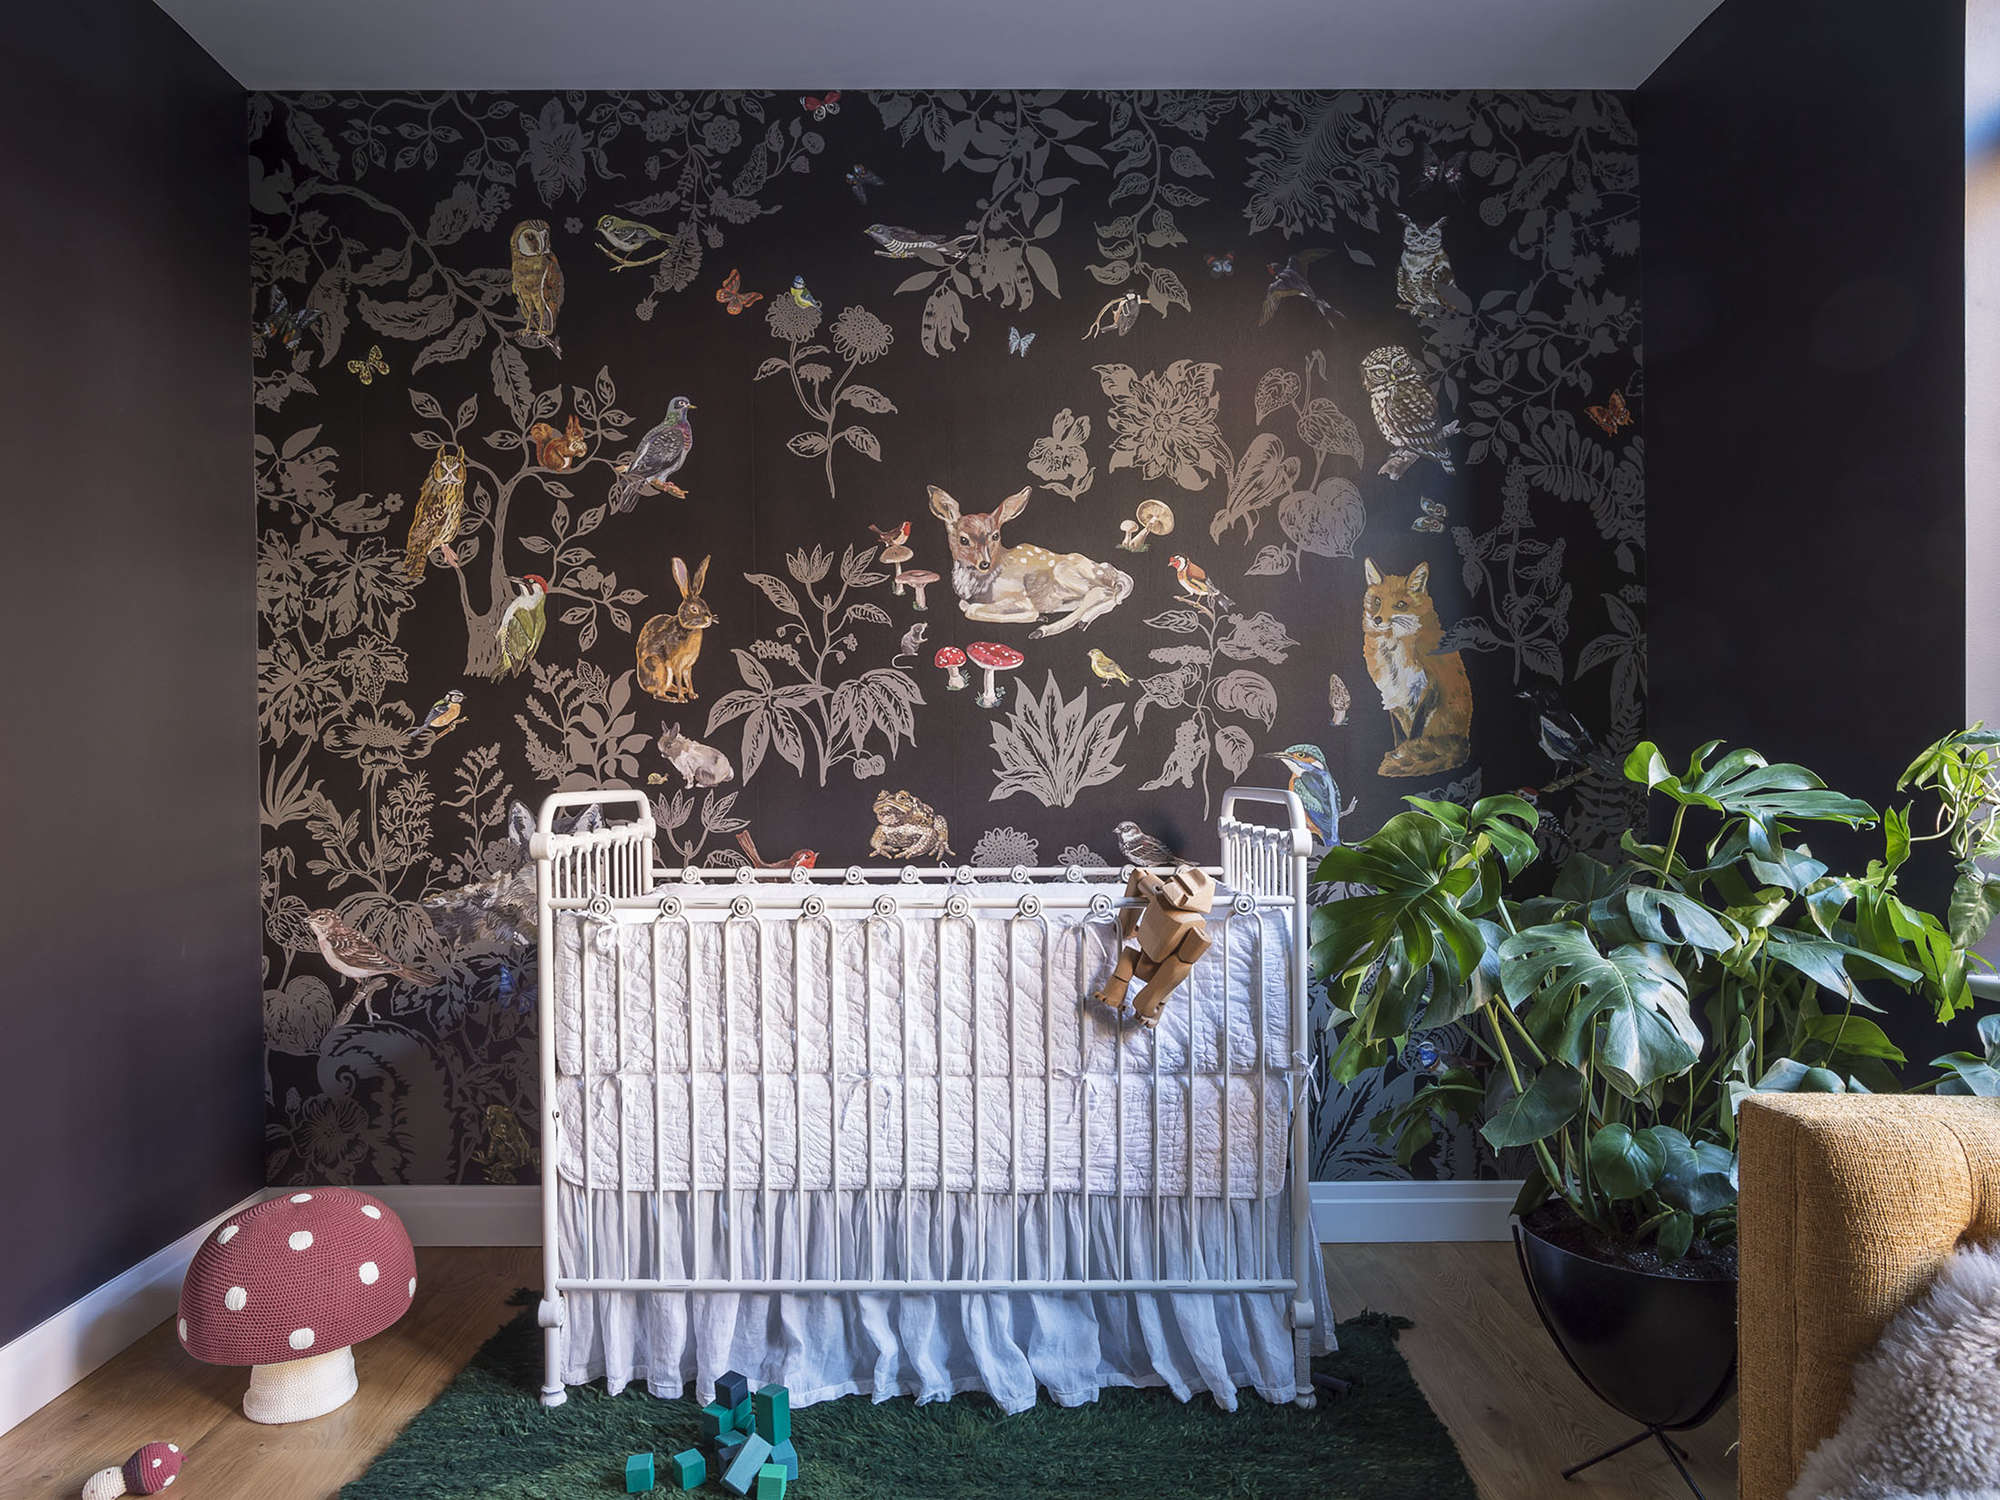 Woodland wallpaper in the baby's room of an apartment designed by Workstead, Matthew Williams photo | Remodelista